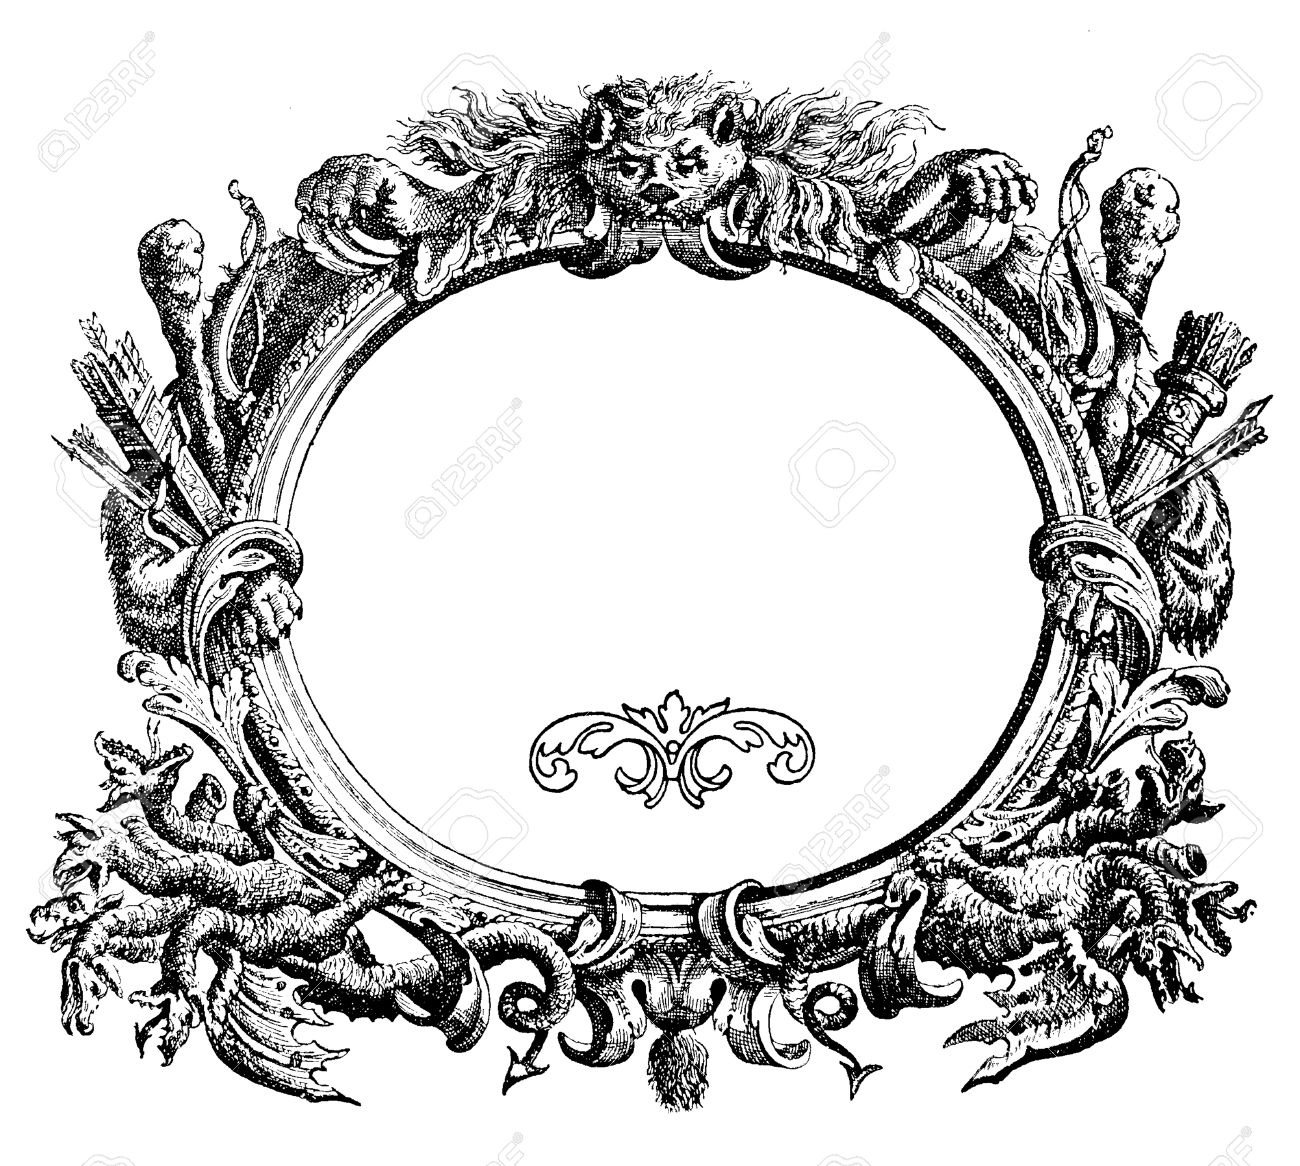 Renaissance ornamental frame with wild beast,arch, arrows and Hydra heads Stock Photo - 30522721